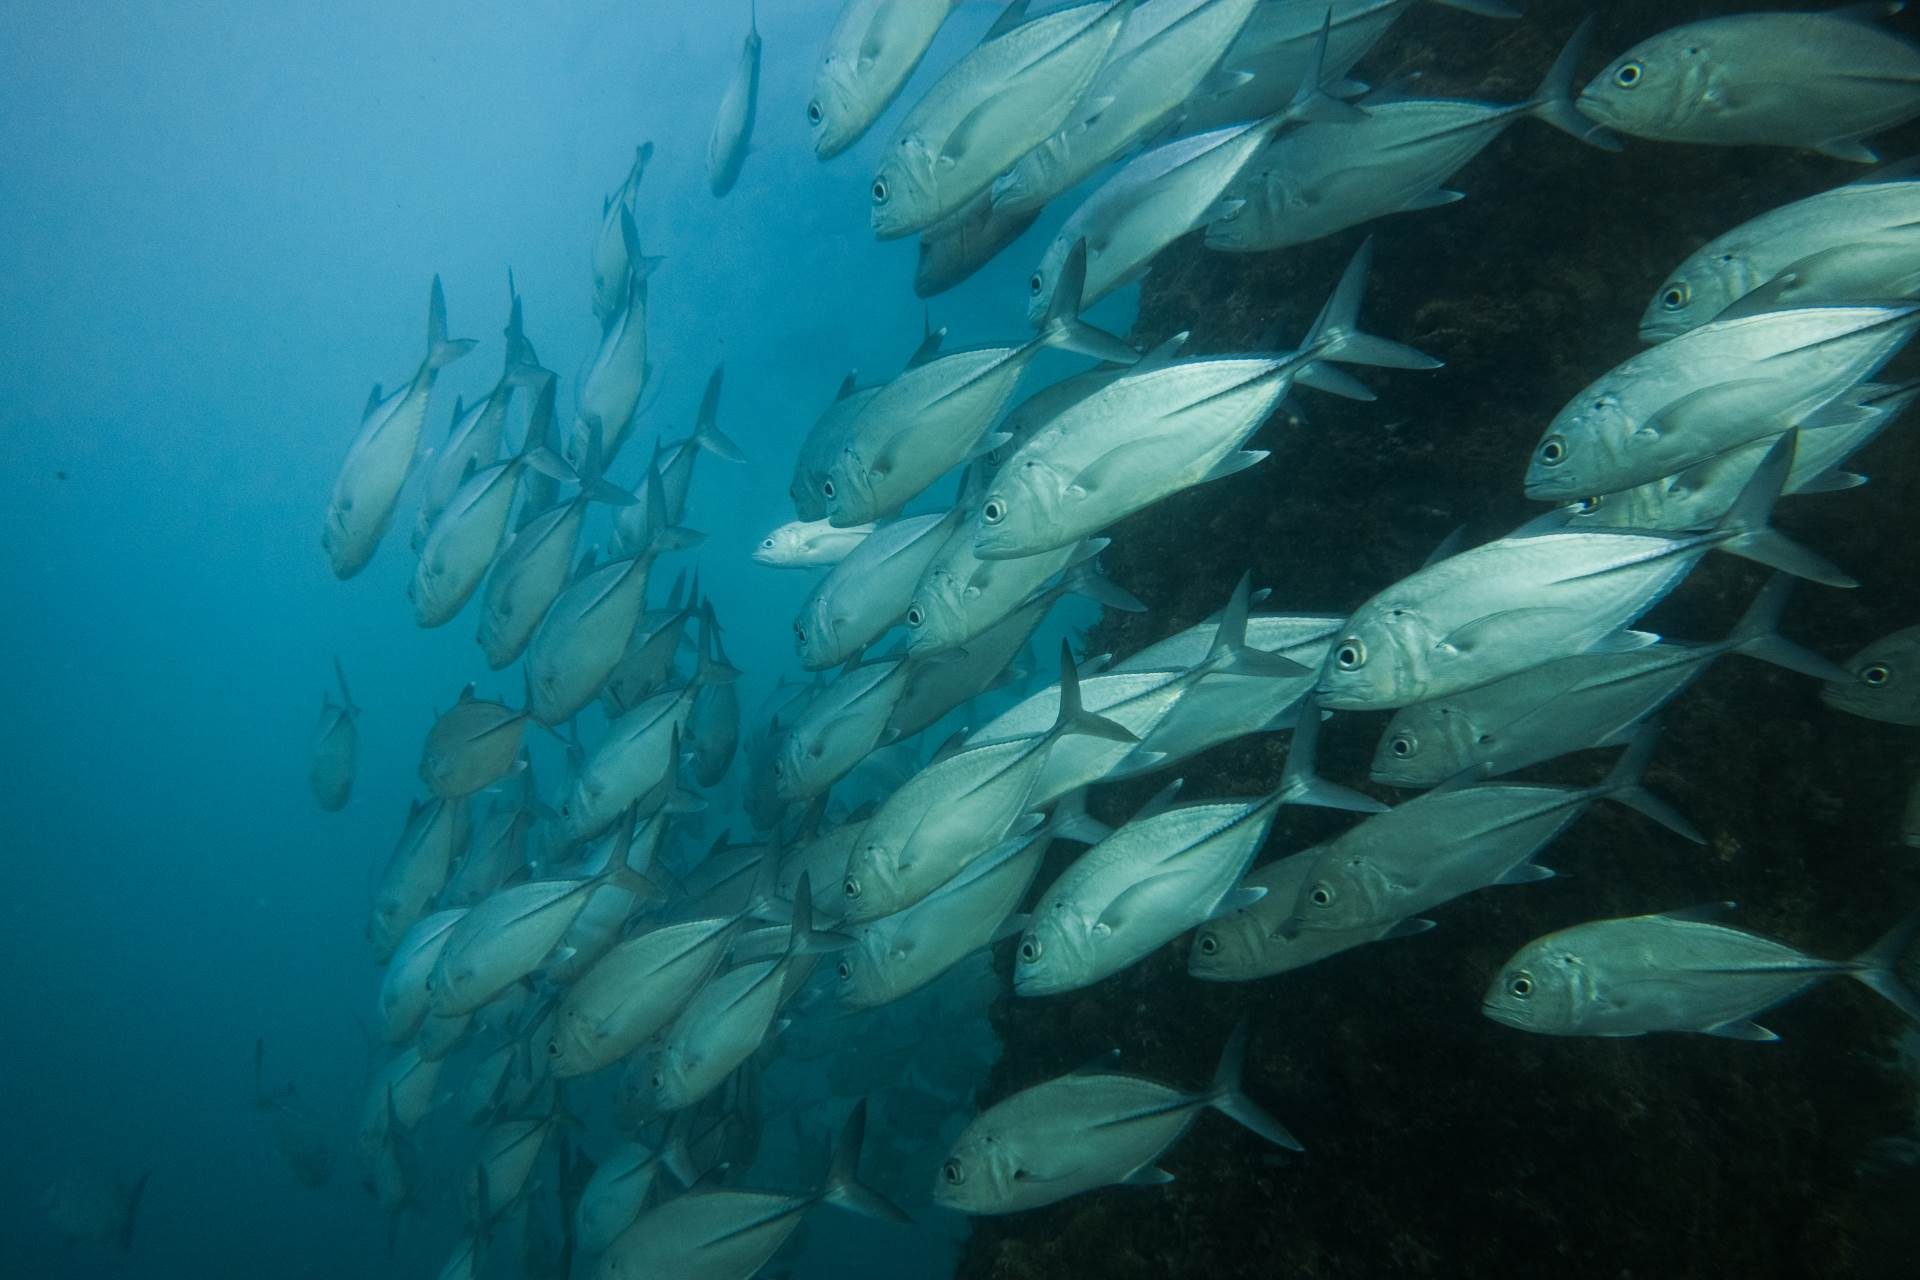 Bigeye trevally swarm around Navy Pier's pilings in Exmouth, Western Australia. These fish are a common sight in the tropical Indo-Pacific region, and they congregate in huge schools, numbering in the thousands. At Navy Pier, due to the lack of fishing, they are particularly numerous. In fact, because of the lack of fishing pressures, most fish species at Navy Pier are more numerous than they are elsewhere.